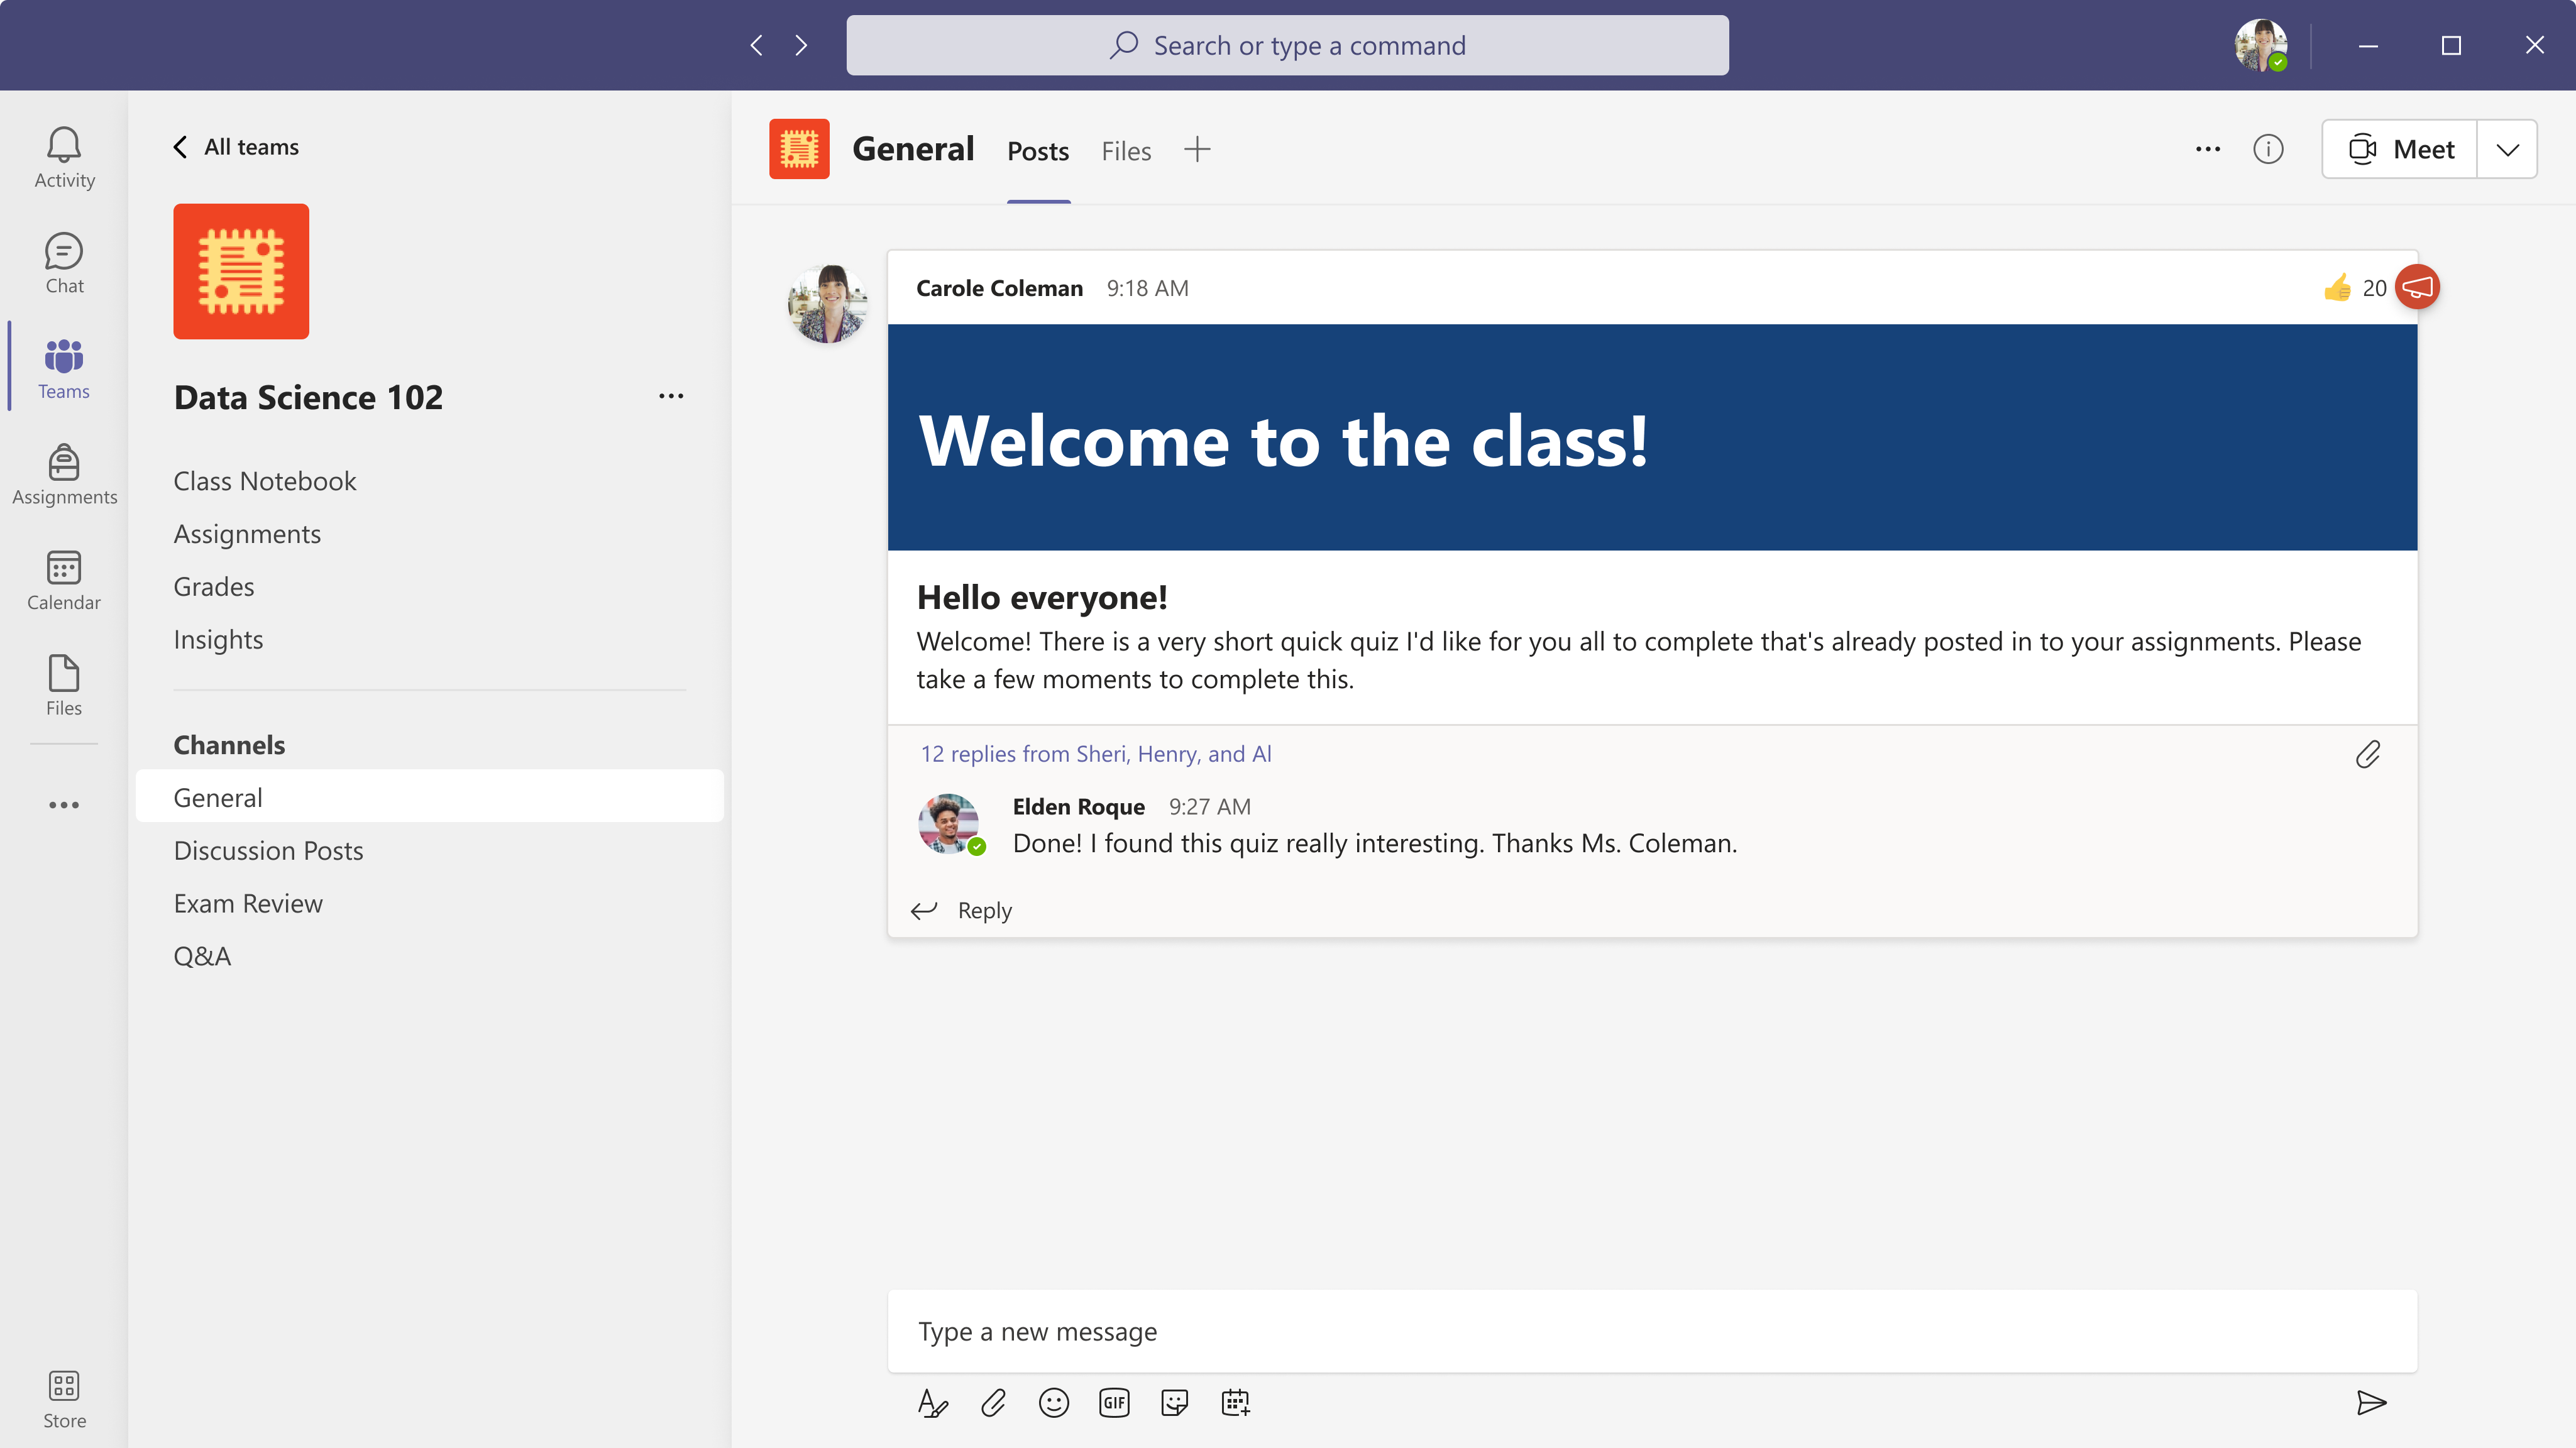 Microsoft Teams for Education interface showing navigation.